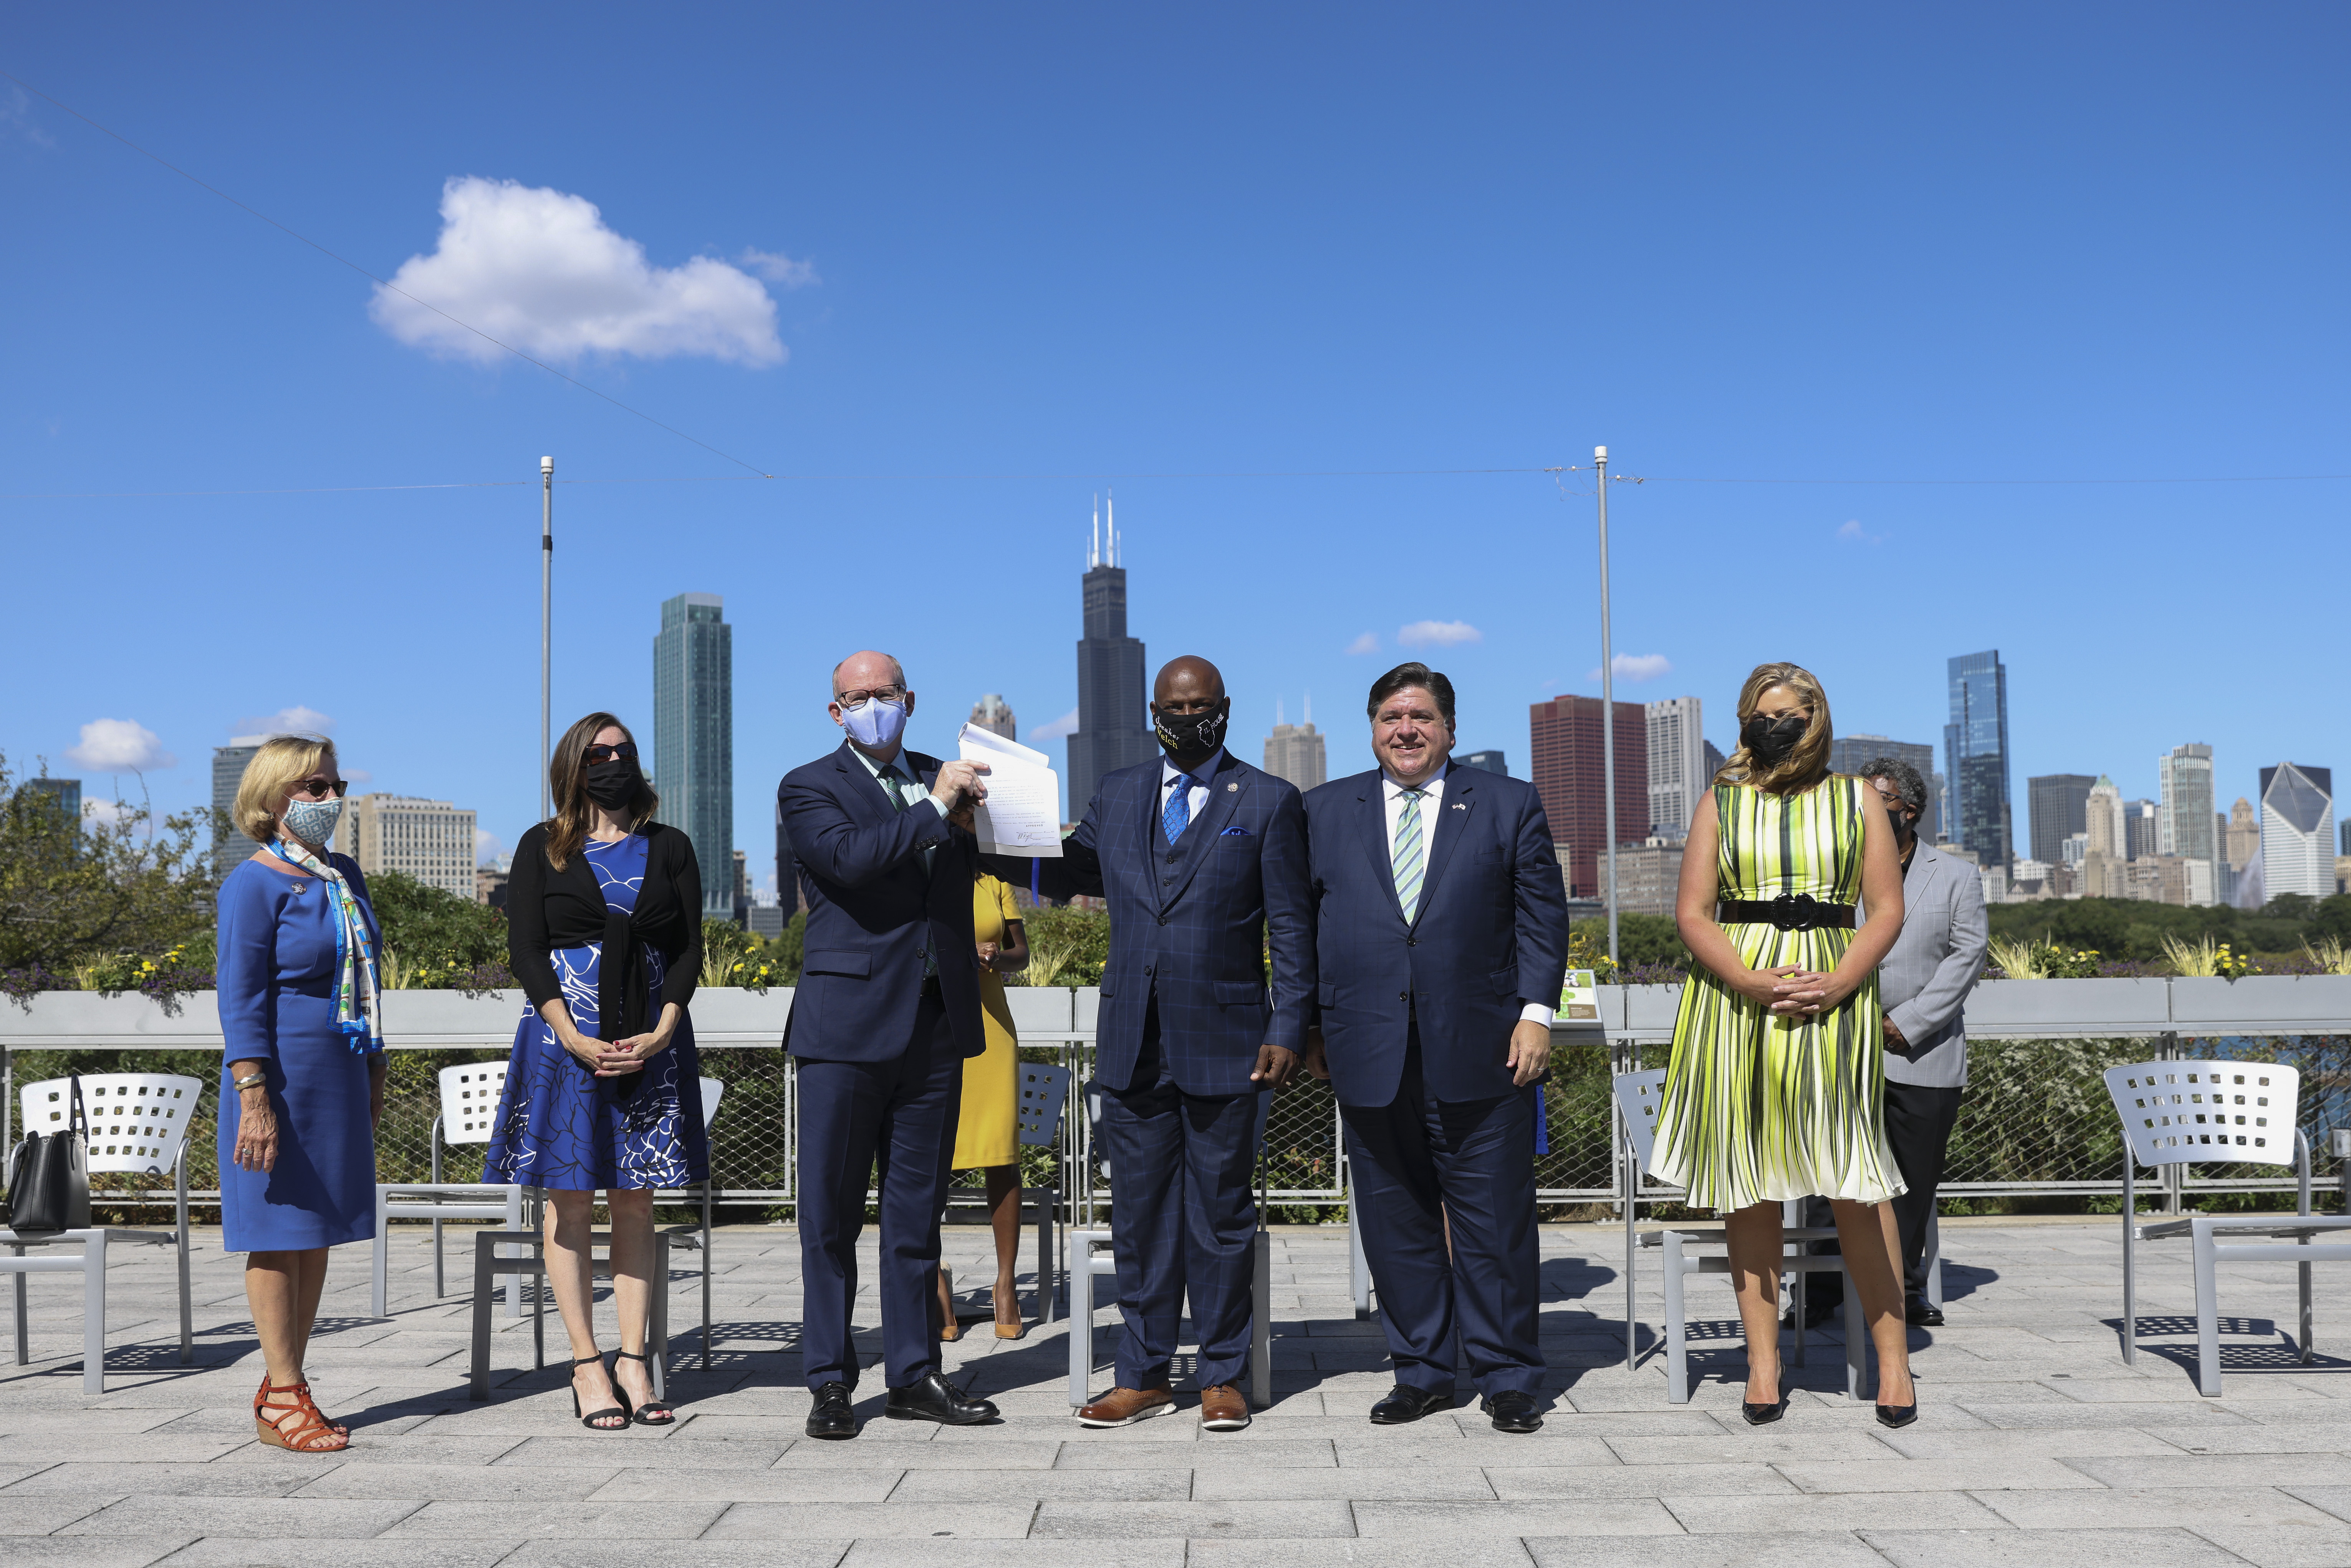 Gov. J.B. Pritzker and first lady MK Pritzker, on right, join state legislators holding up the Climate and Equitable Jobs Act at the Shedd Aquarium after the governor signed it Wednesday.